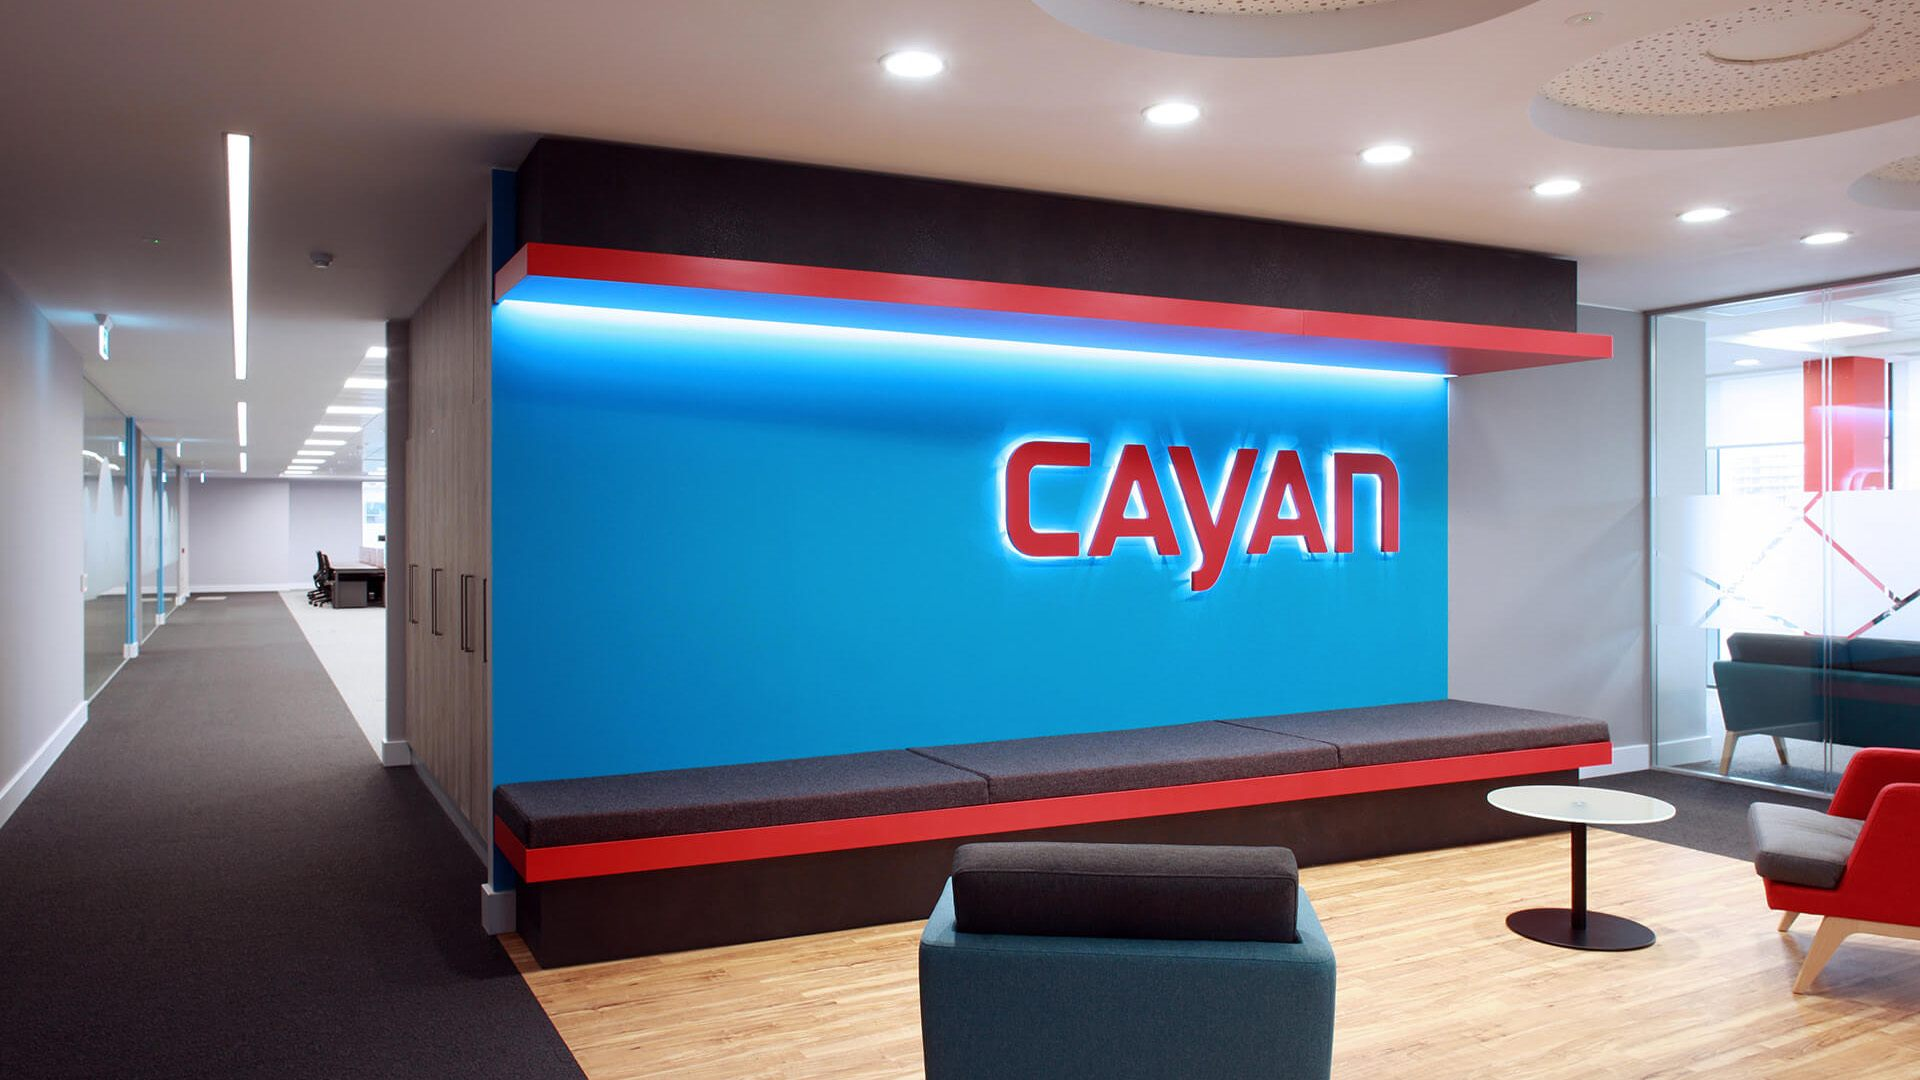 Cayan reception area in Belfast